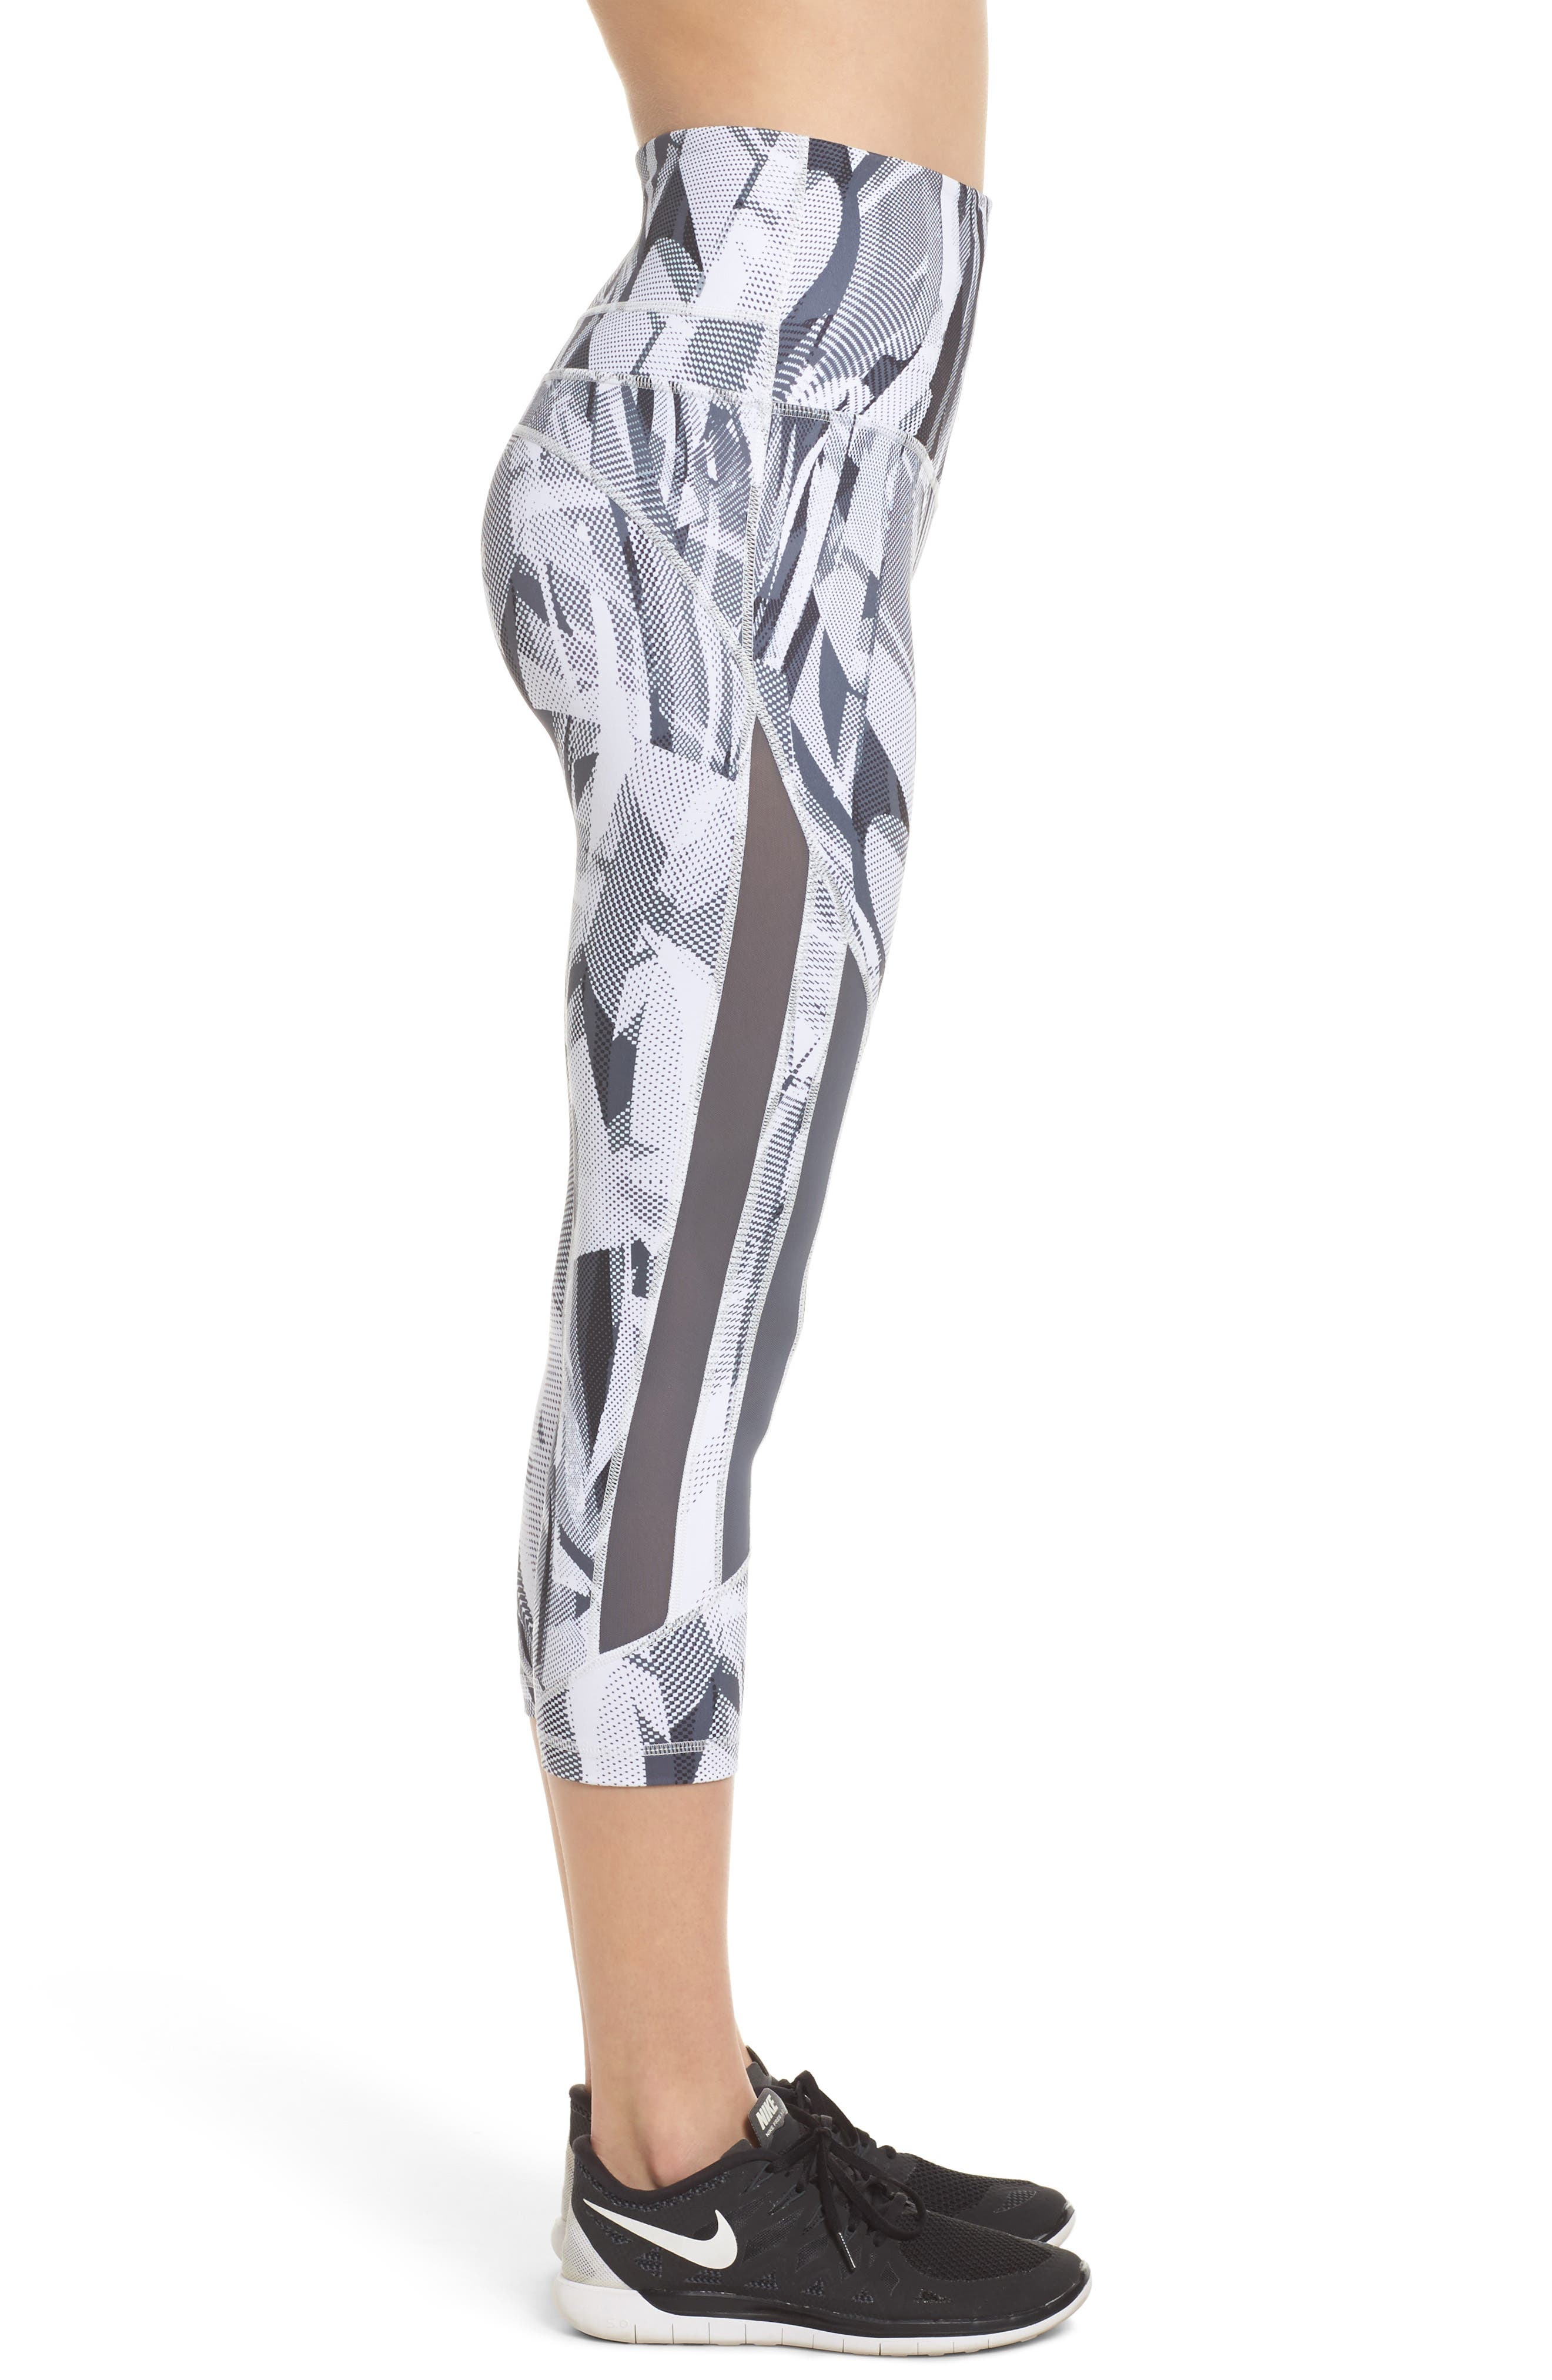 Sheer to There High Waist Crop Leggings,                             Alternate thumbnail 3, color,                             White Atmospheric Camo Print